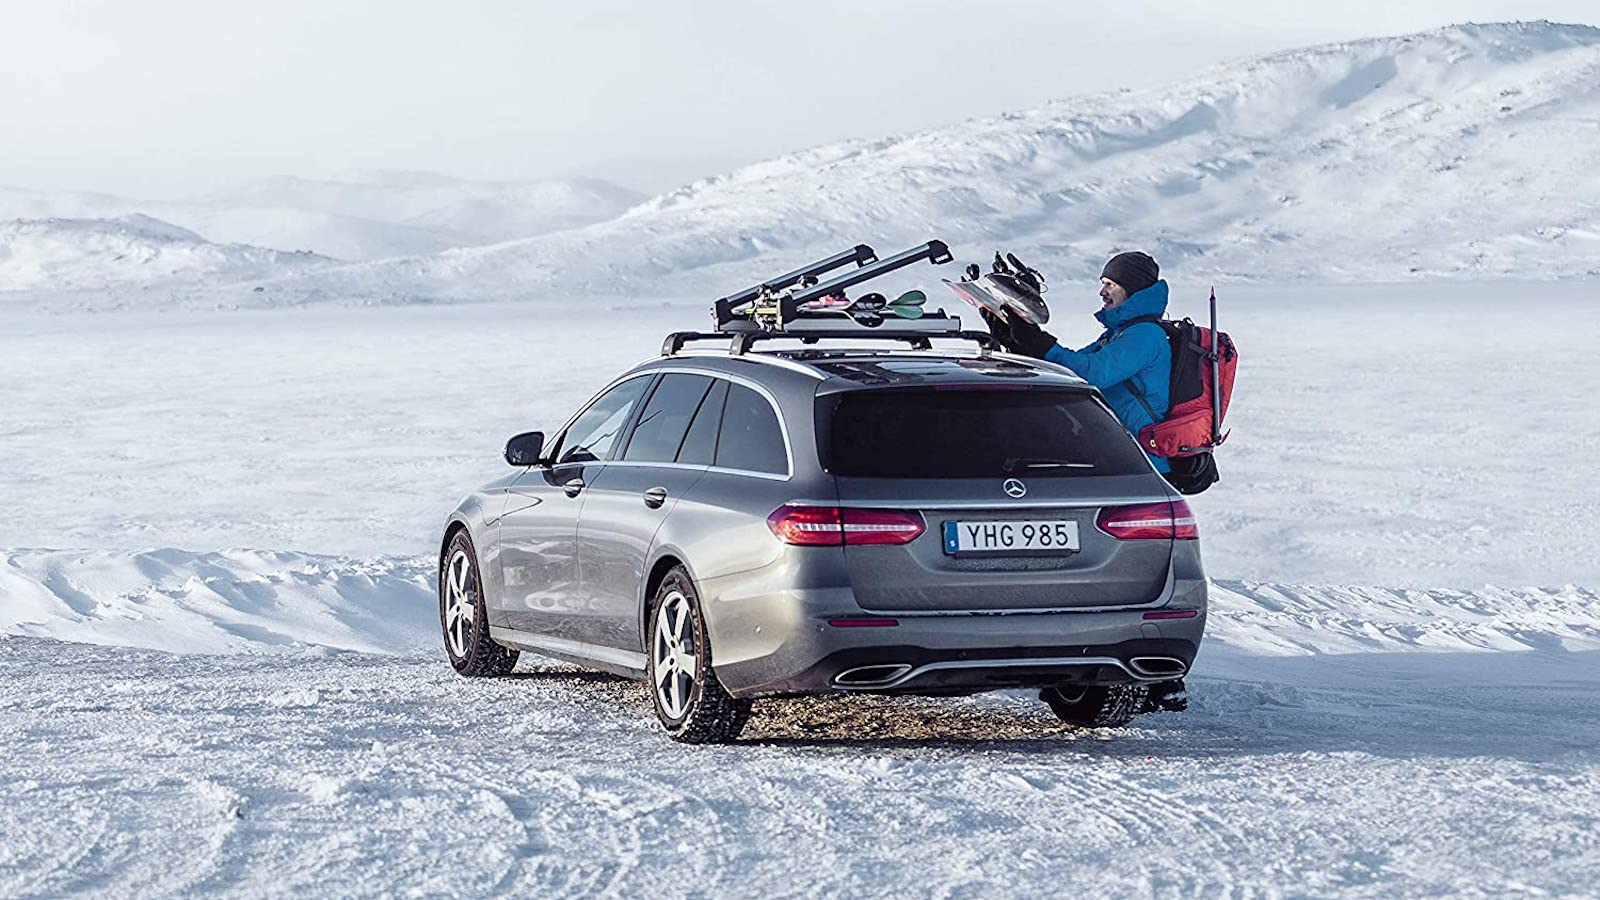 Thule Ski & Snowboard Car Rack features an adjustable clearance with large bindings